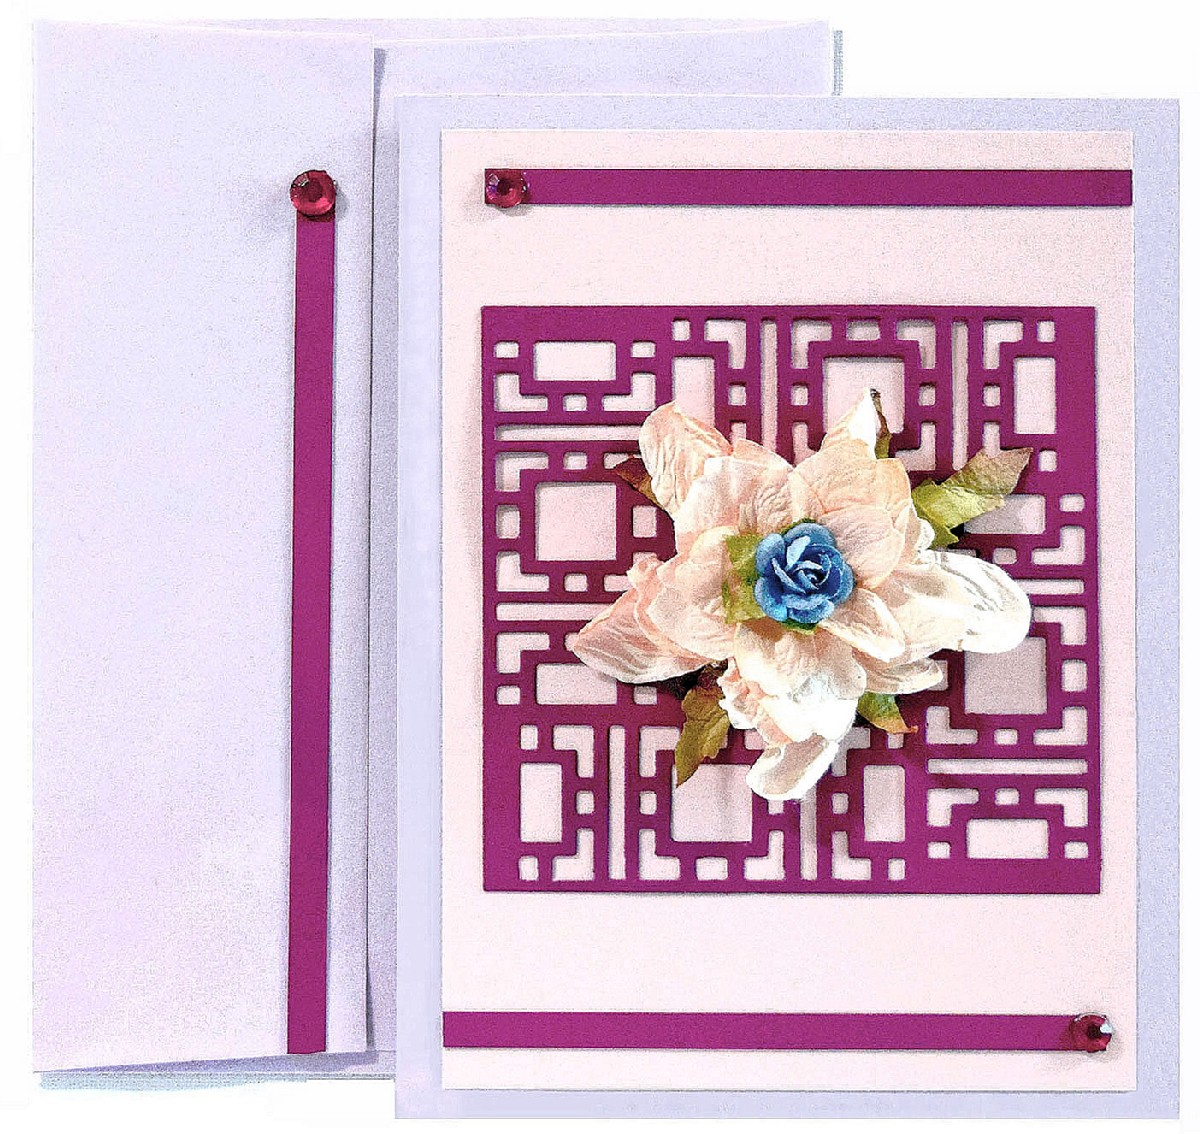 popular paper and cheery lynn frame card - 1Paper Papers Cheery Lynn Frame Card3 webfinal - Popular Paper and Cheery Lynn Frame Card